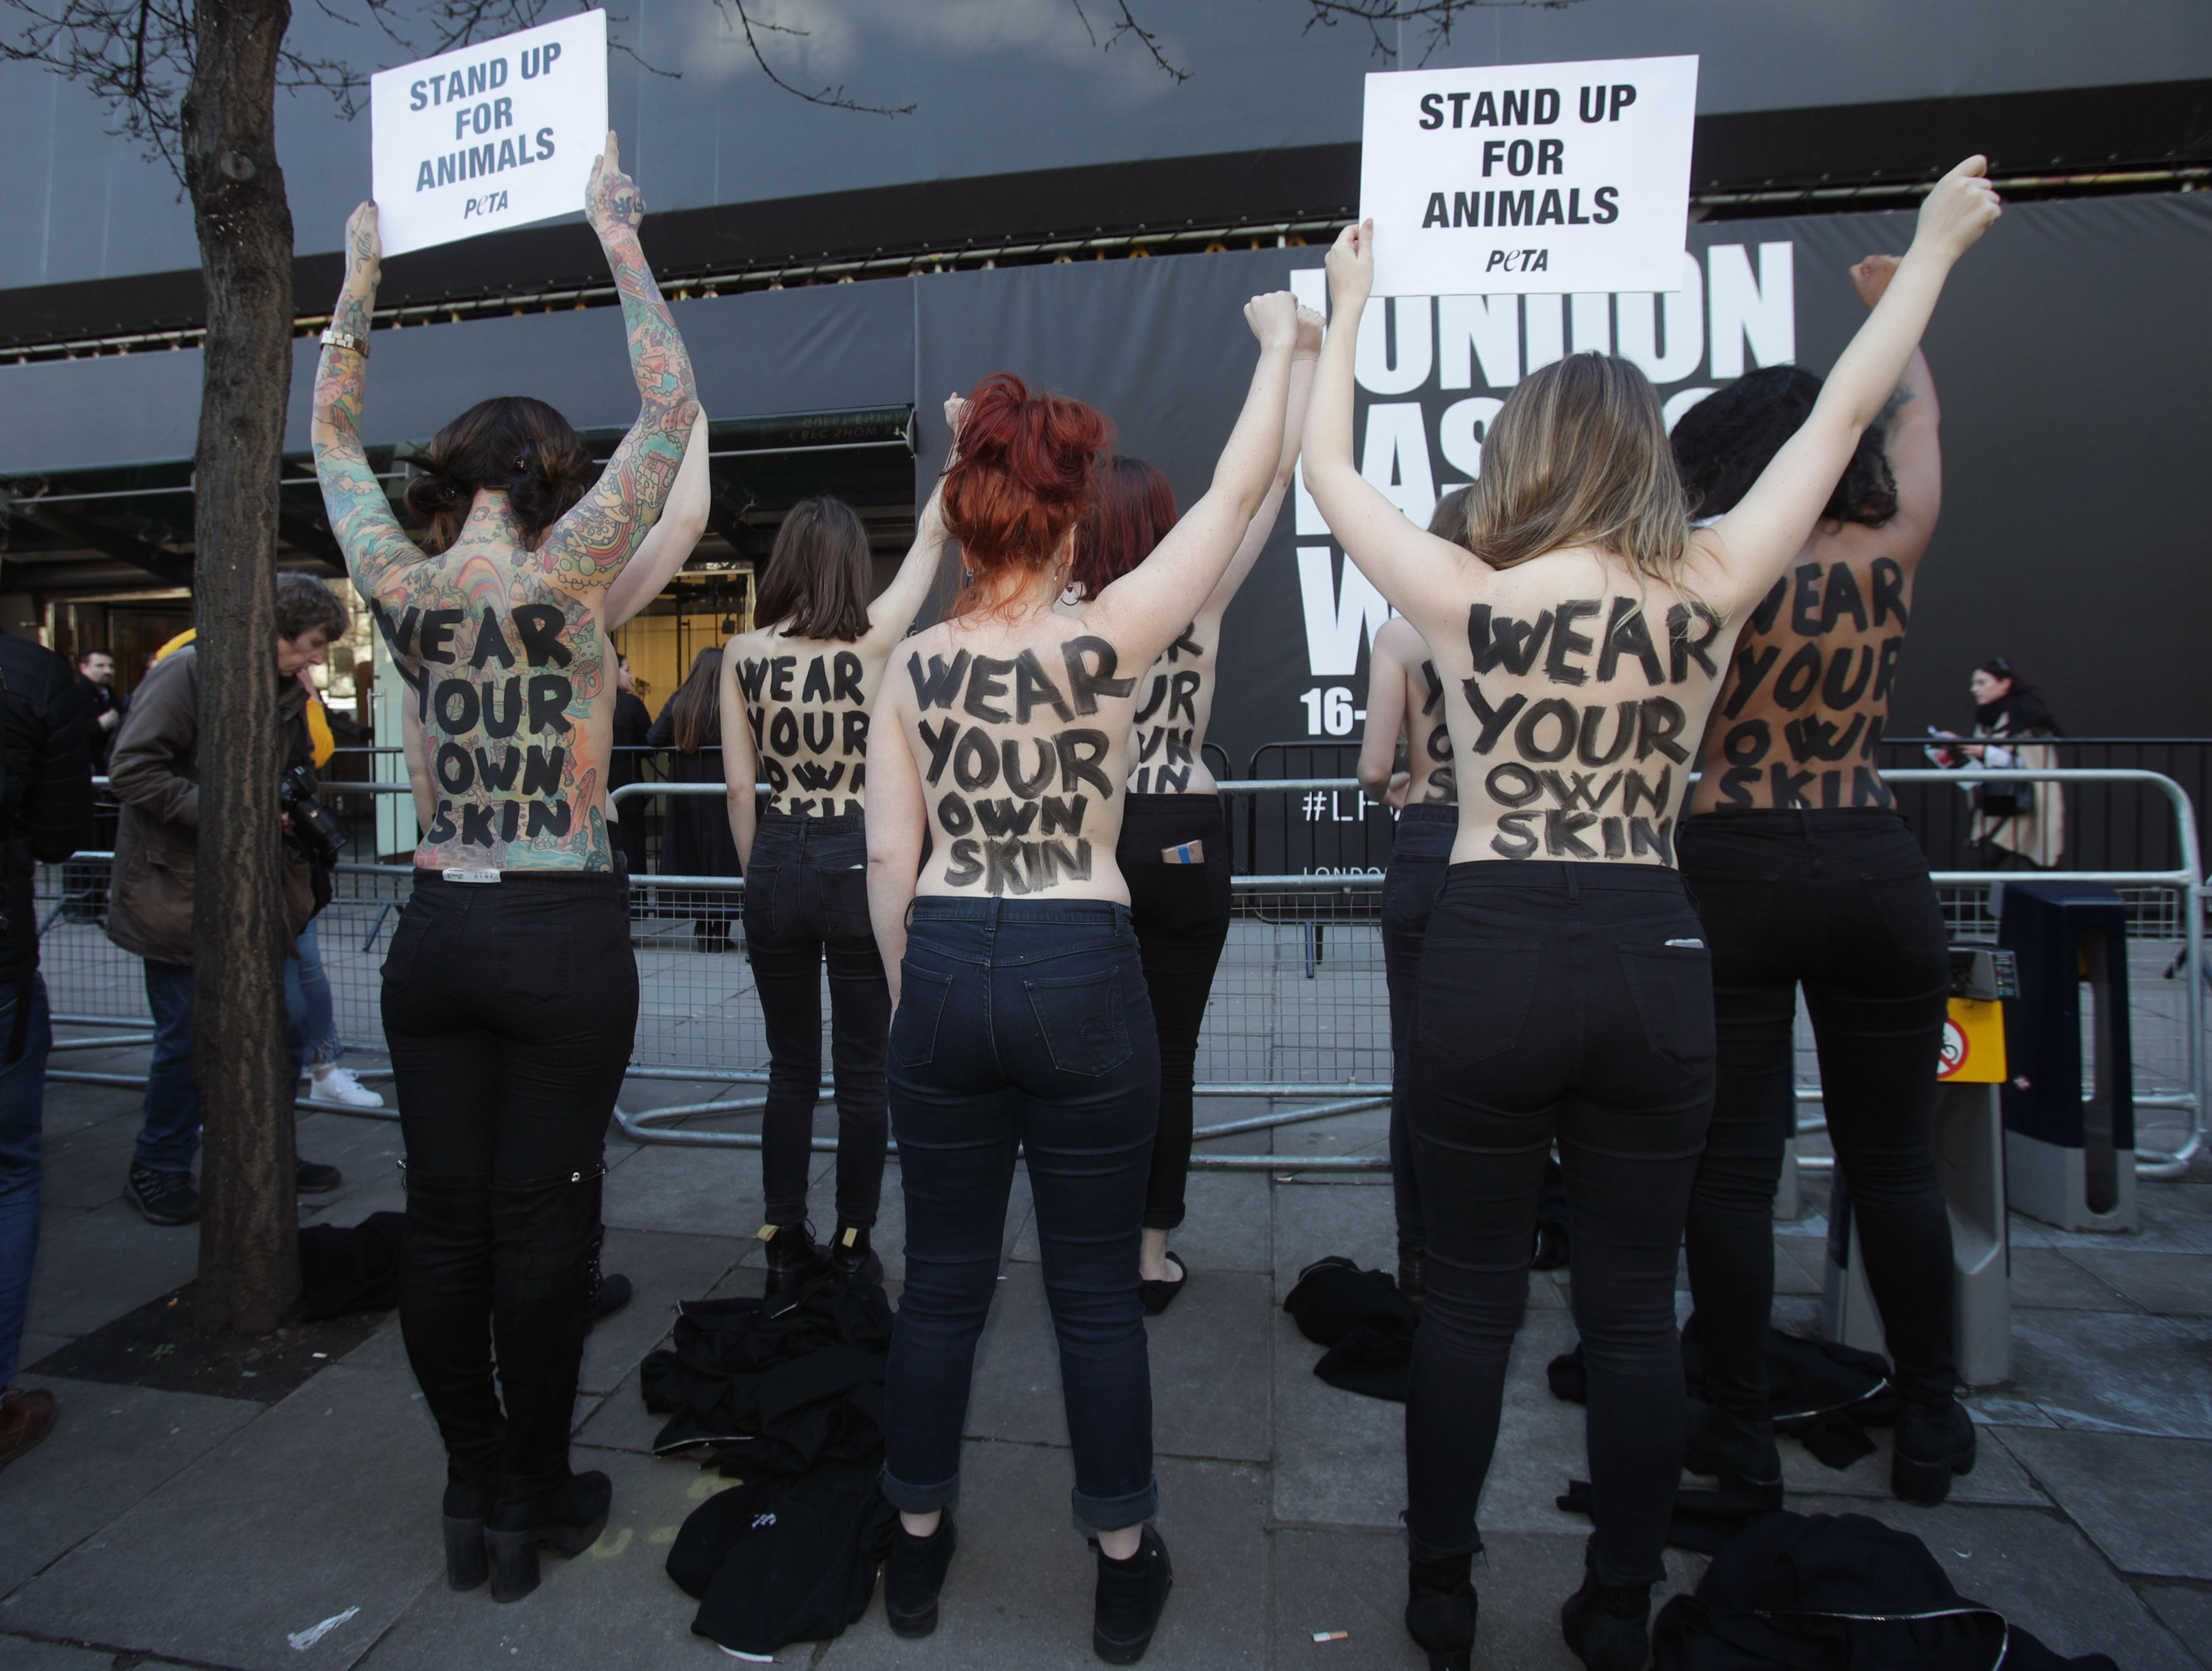 PETA supporters staged a protest against the use of fur at London Fashion Week in February